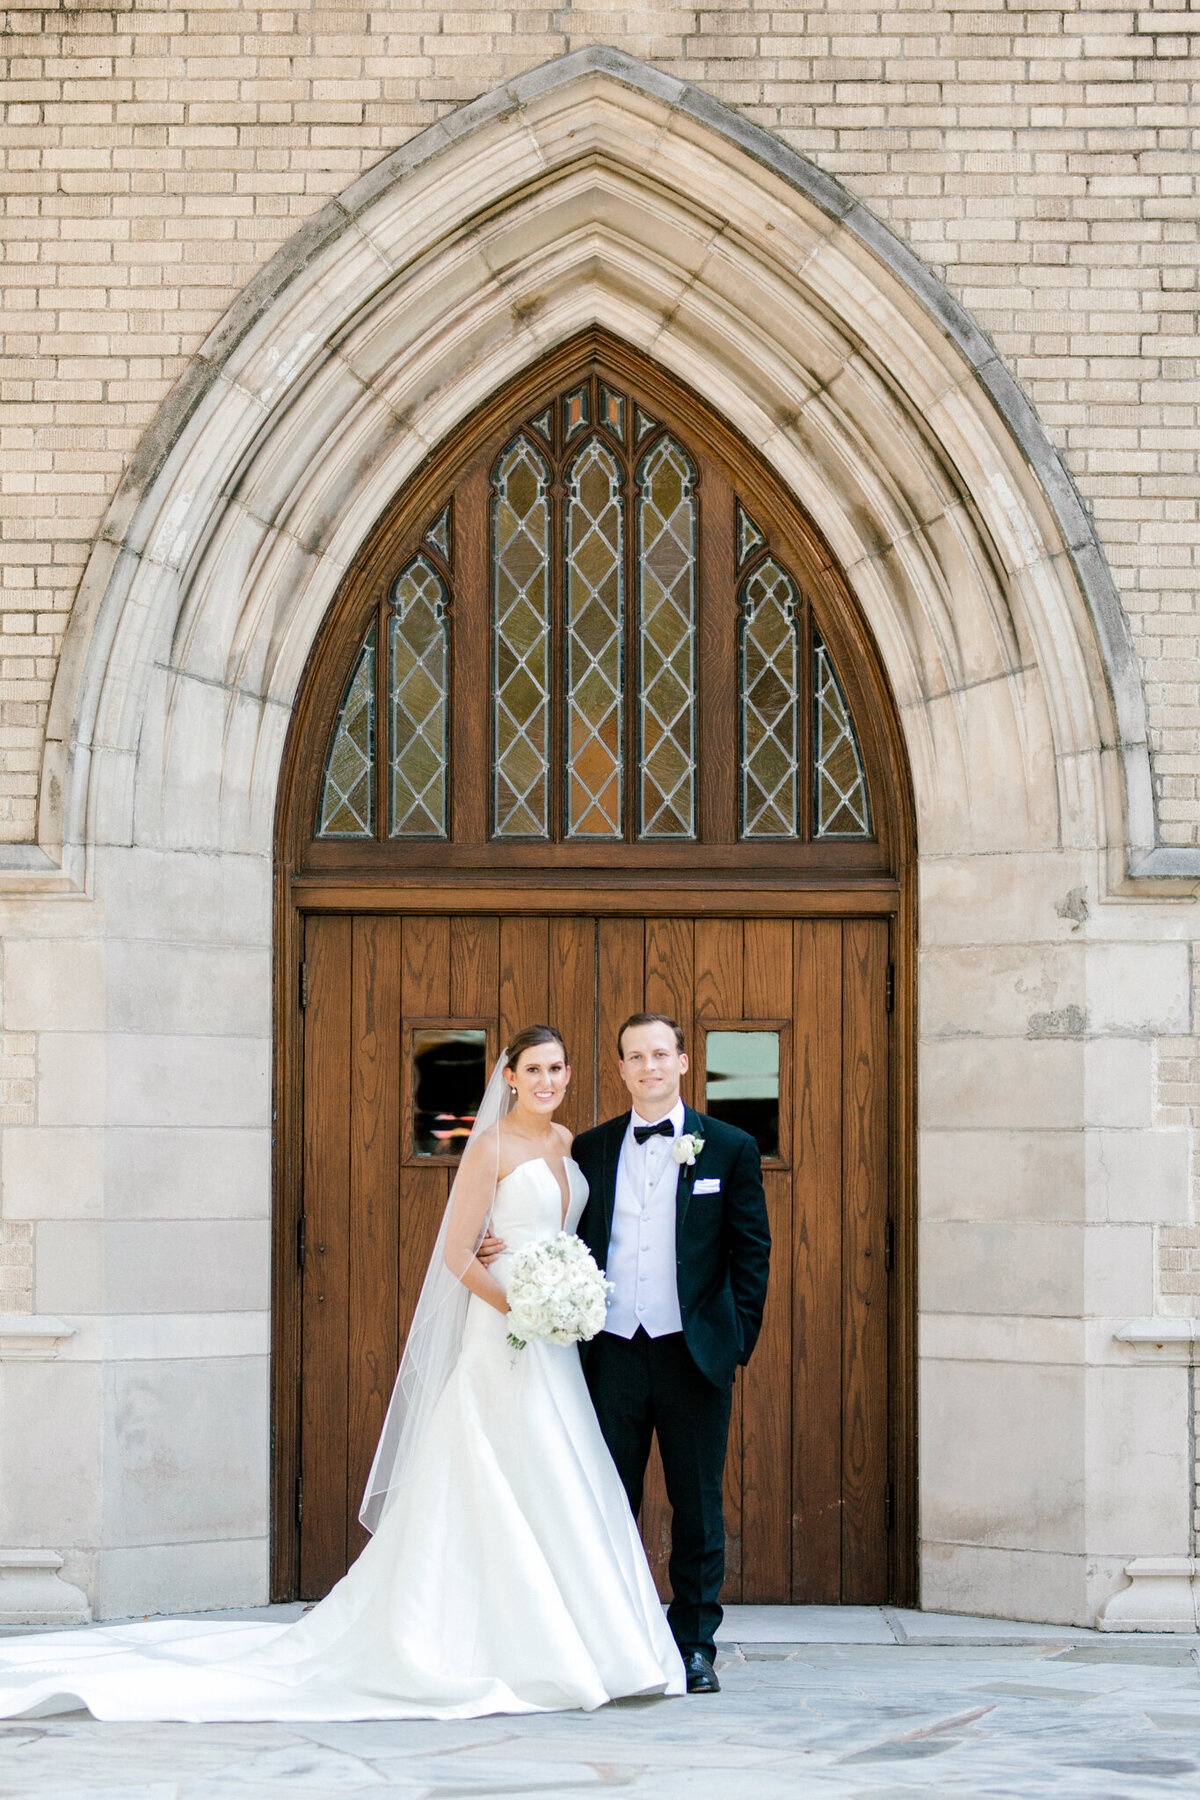 Wedding at the Crescent Court Hotel and Highland Park United Methodist Church in Dallas | Sami Kathryn Photography | DFW Wedding Photographer-16